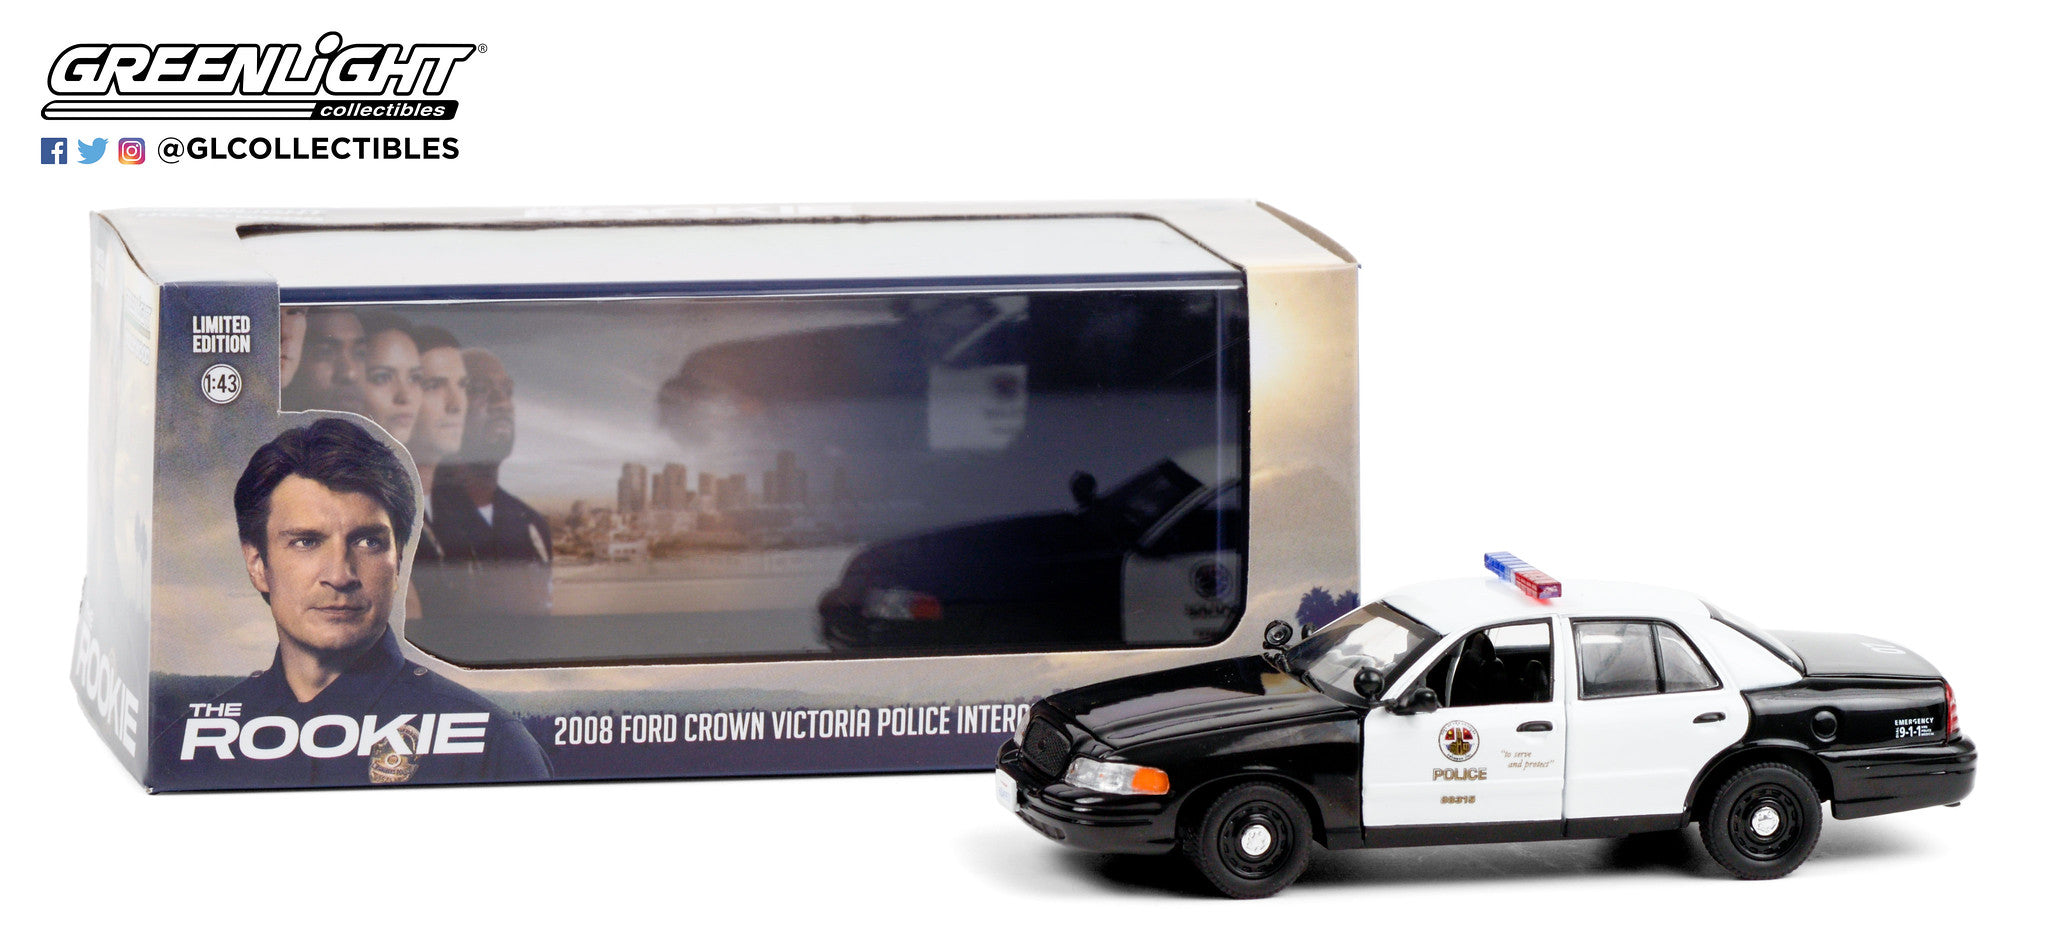 GreenLight 1:43 The Rookie (2018-Current TV Series) - 2008 Ford Crown Victoria Police Interceptor - Los Angeles Police Department (LAPD) 86586